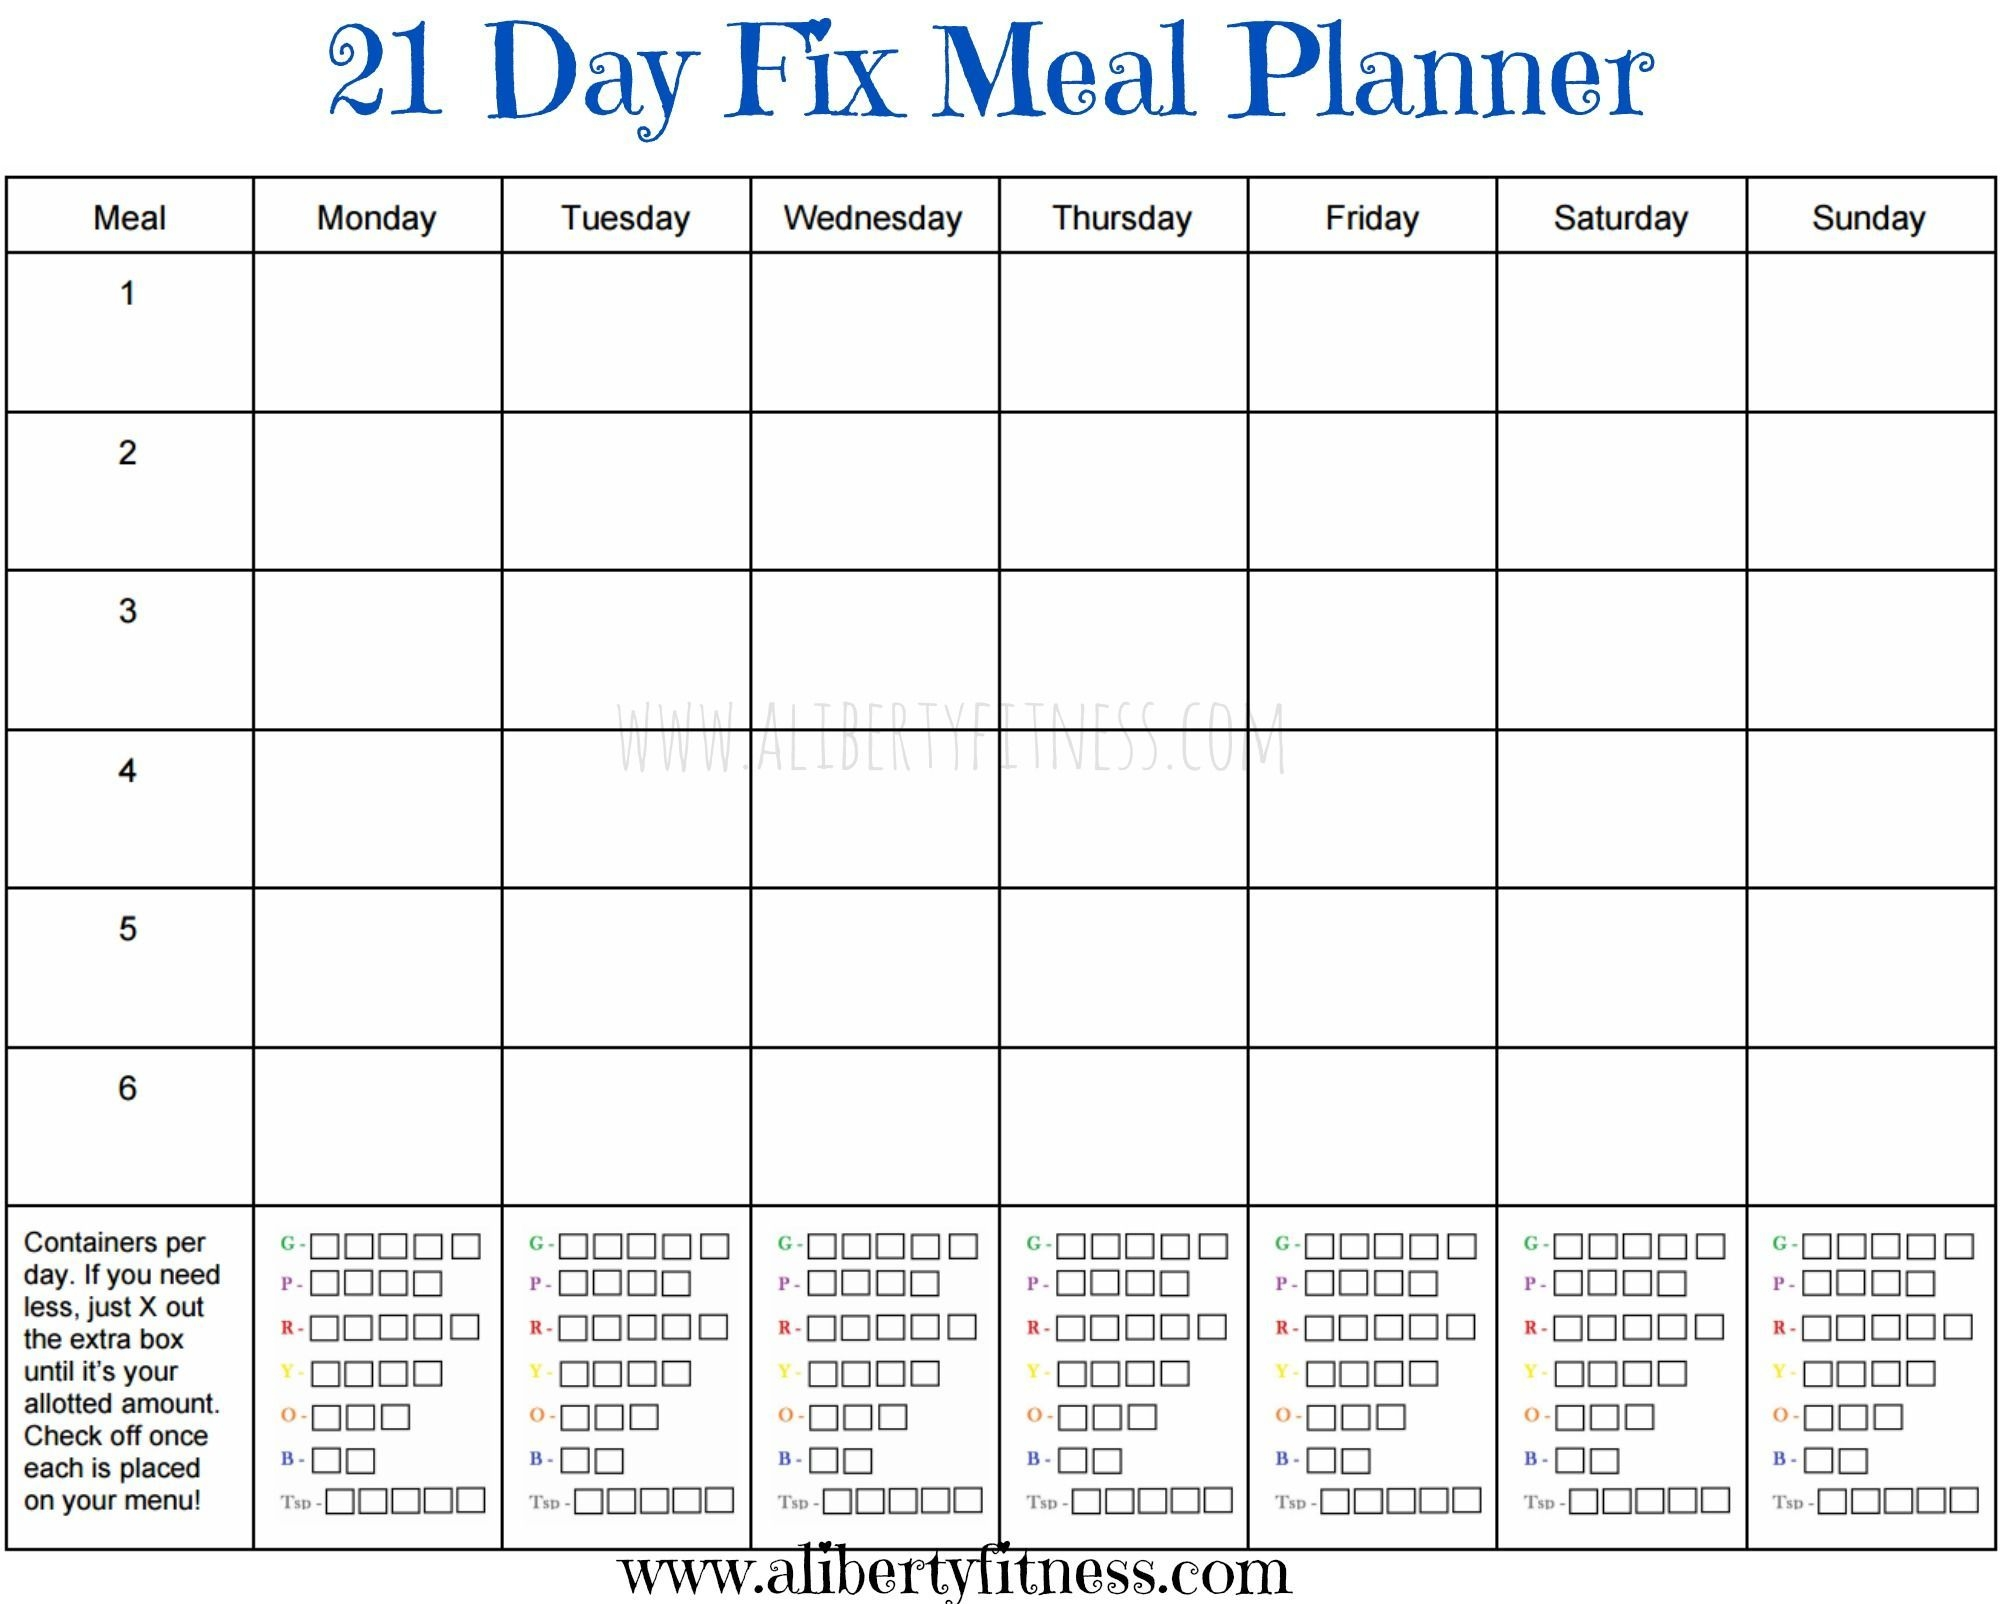 21 Day Fix Meal Planner And Grocery List (With Images) | 21